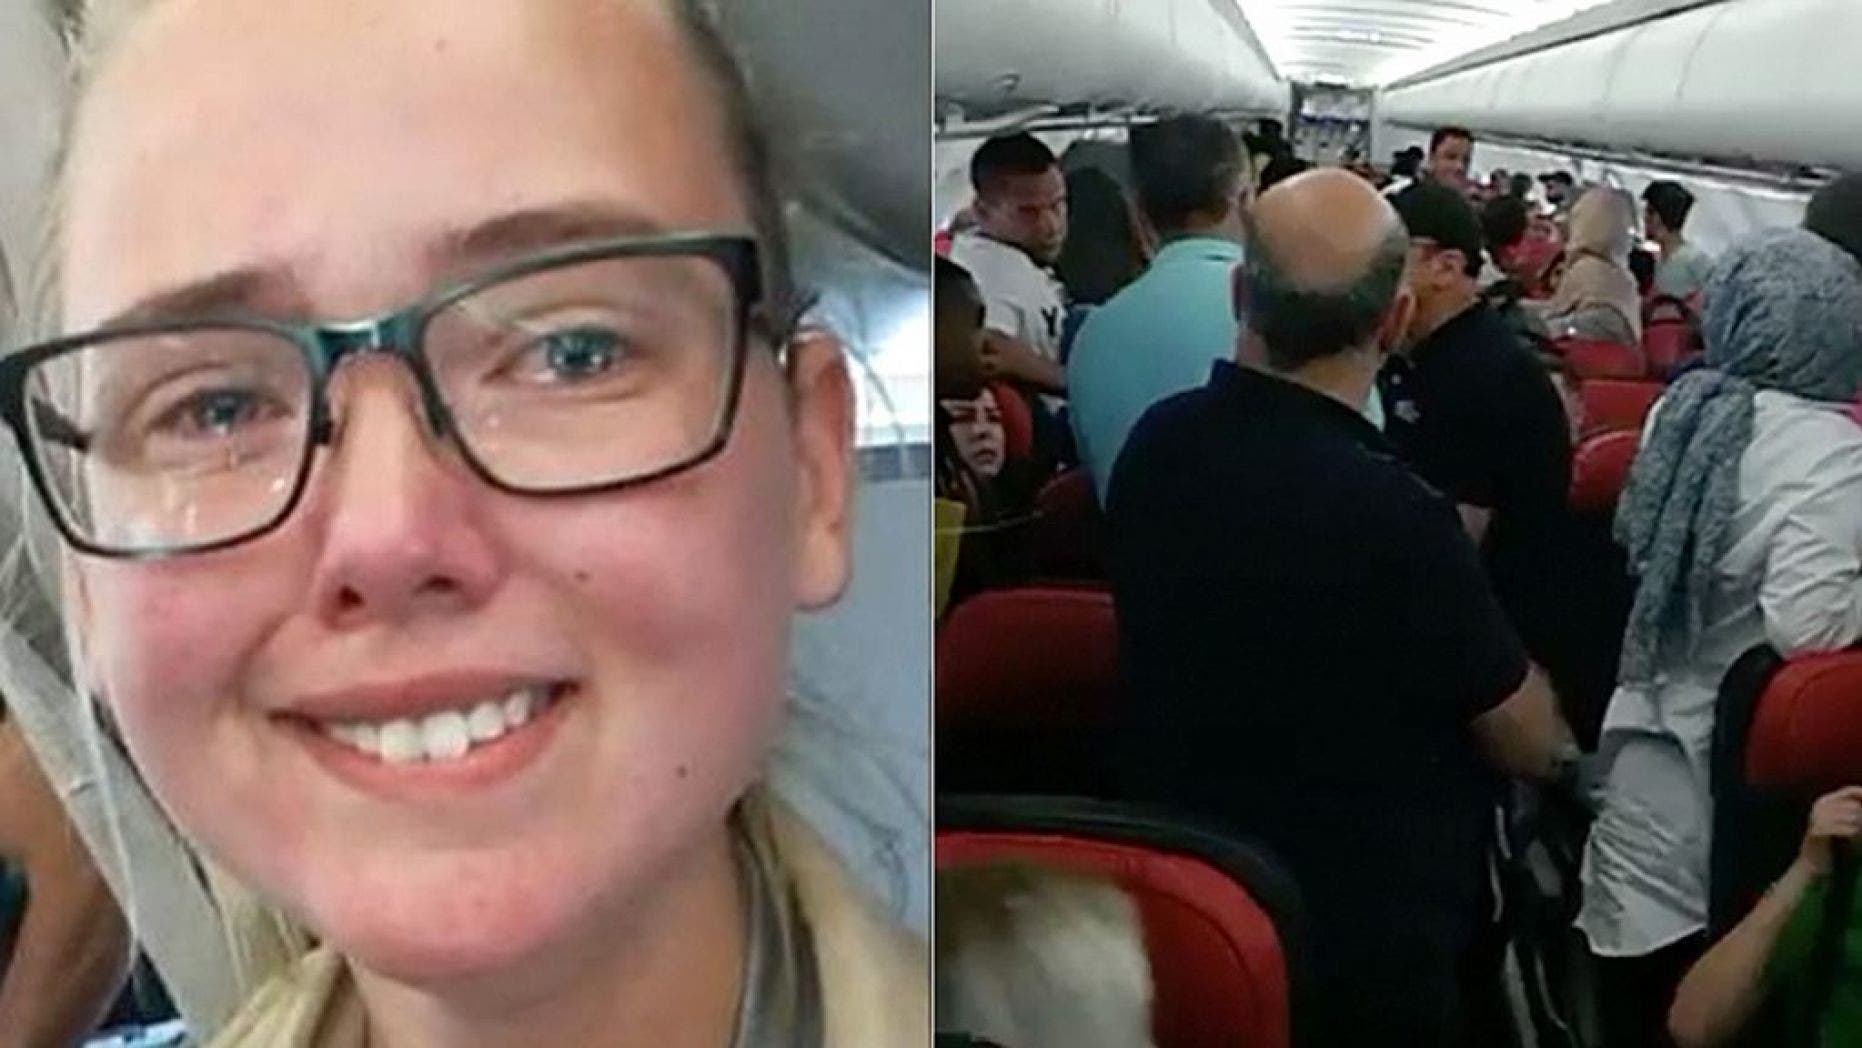 Elin Ersson, a student activist who refused to take her seat on a plane until an Afghan migrant was taken off the flight, has been fined for her efforts.